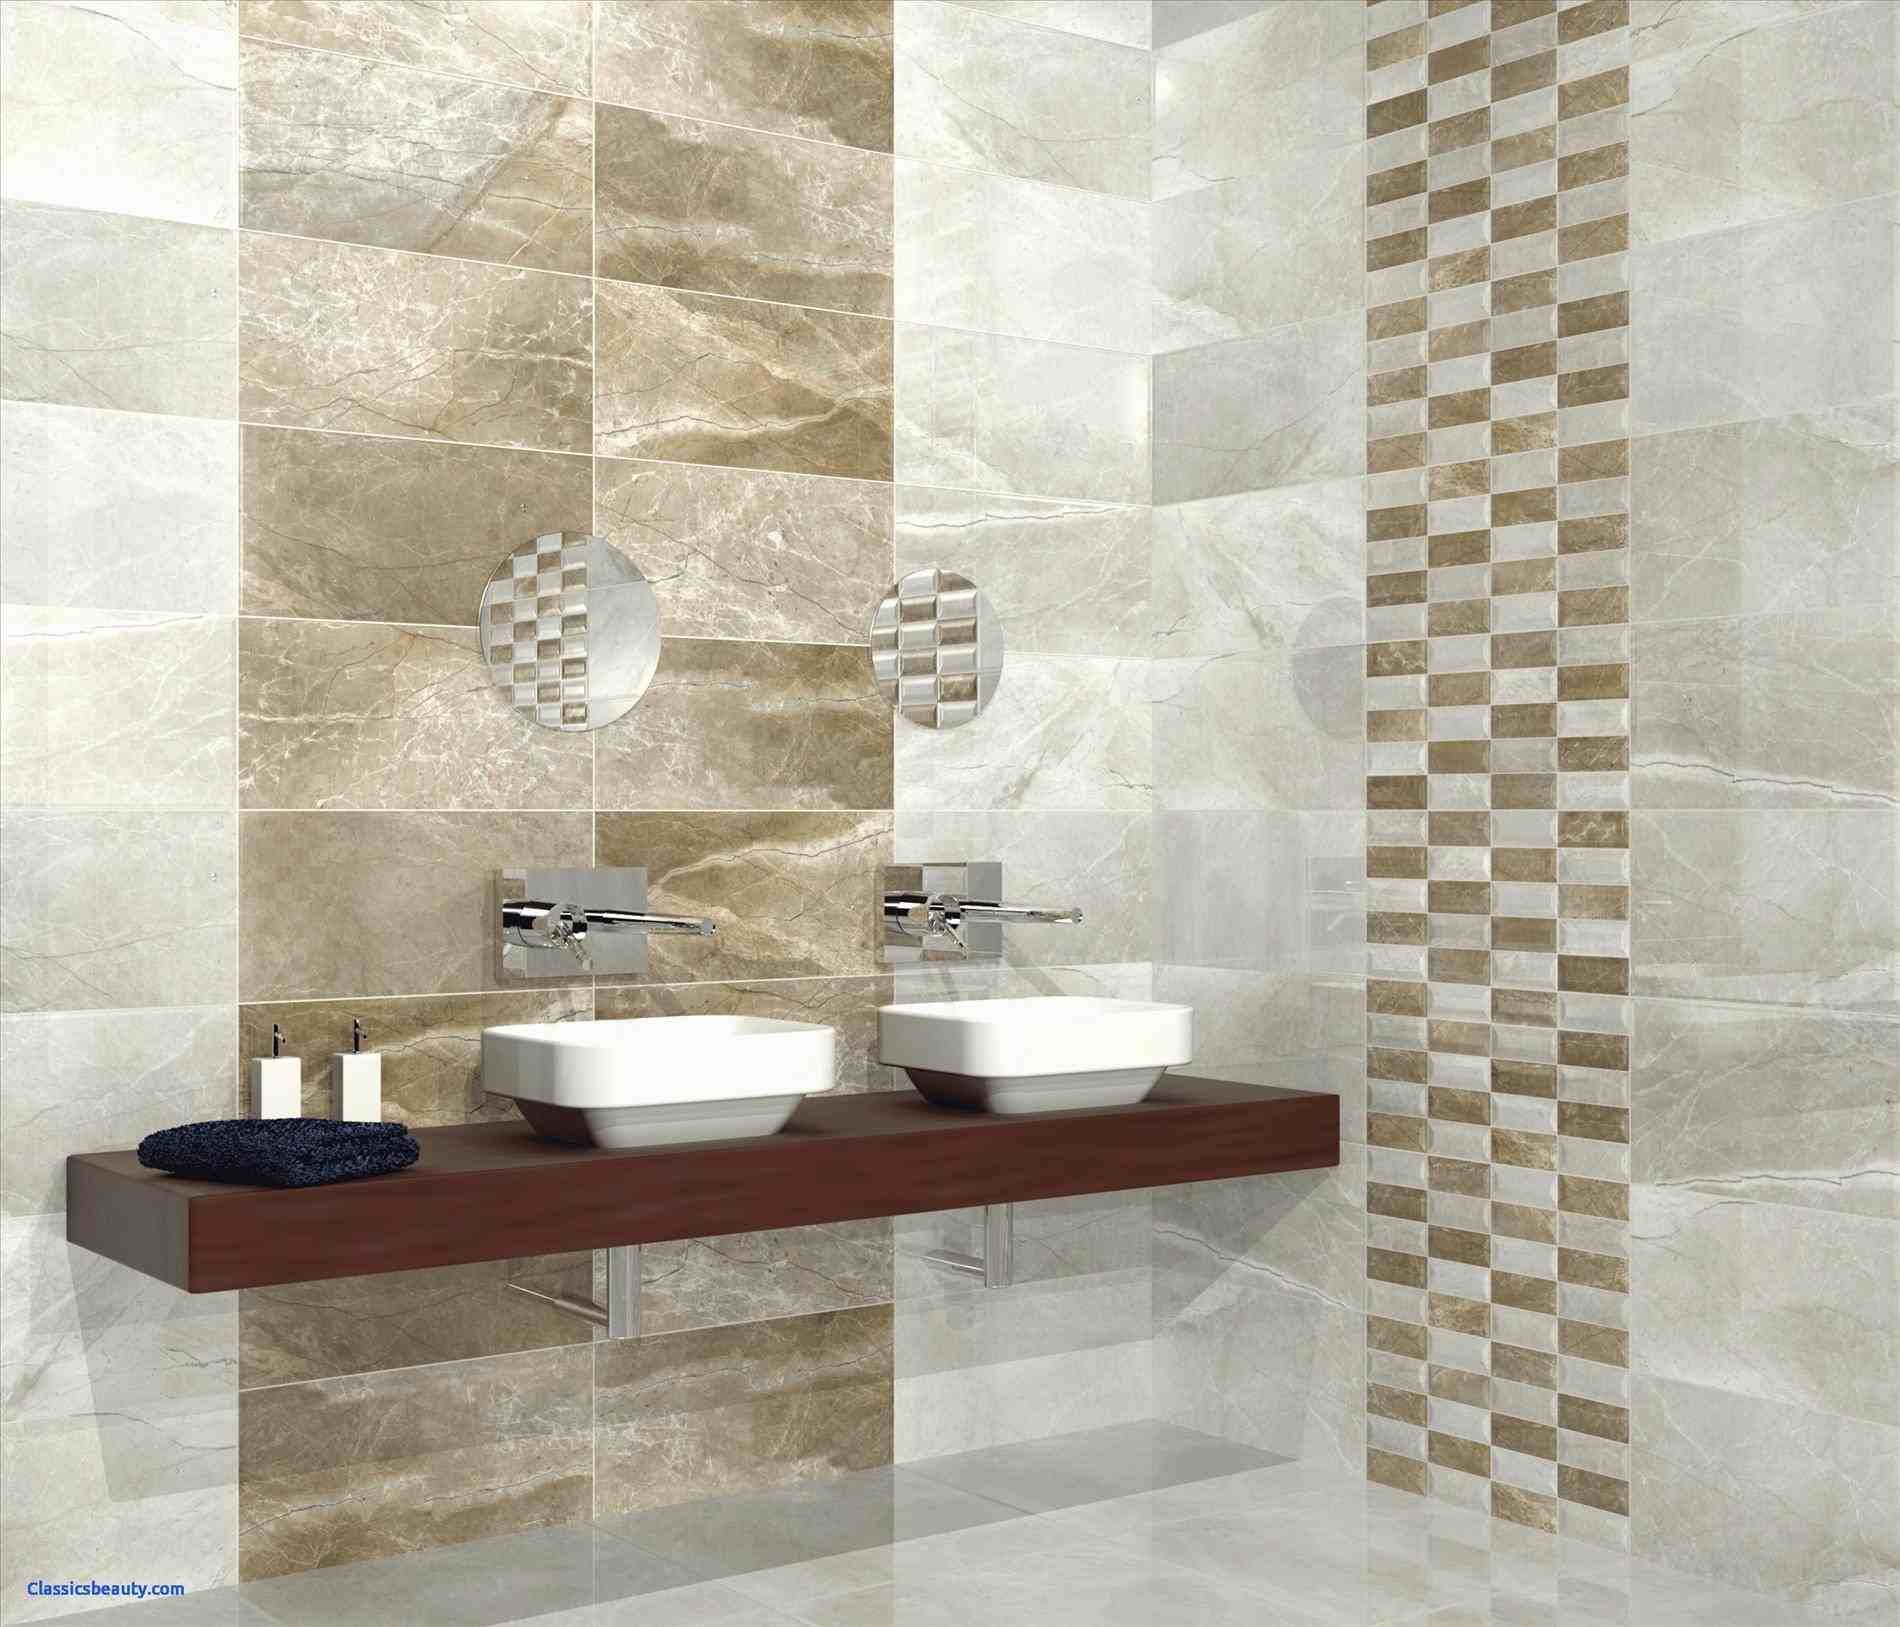 New Post indian bathroom tiles design visit Bobayule ...